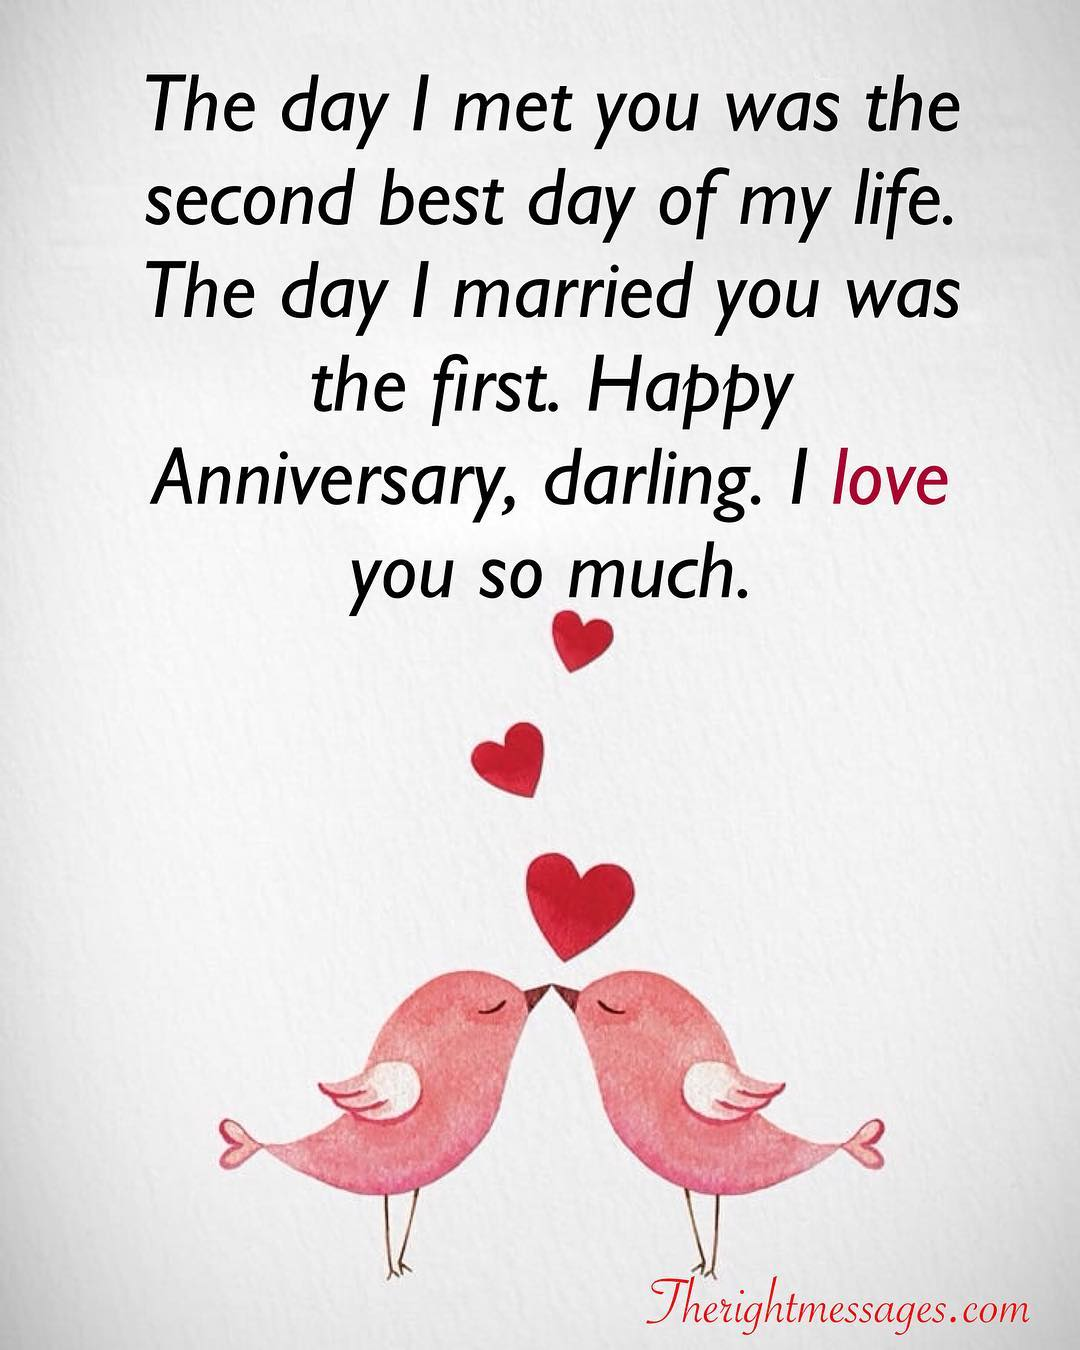 Wedding Anniversary Wishes: 23 Best Wedding Anniversary Wishes & Messages